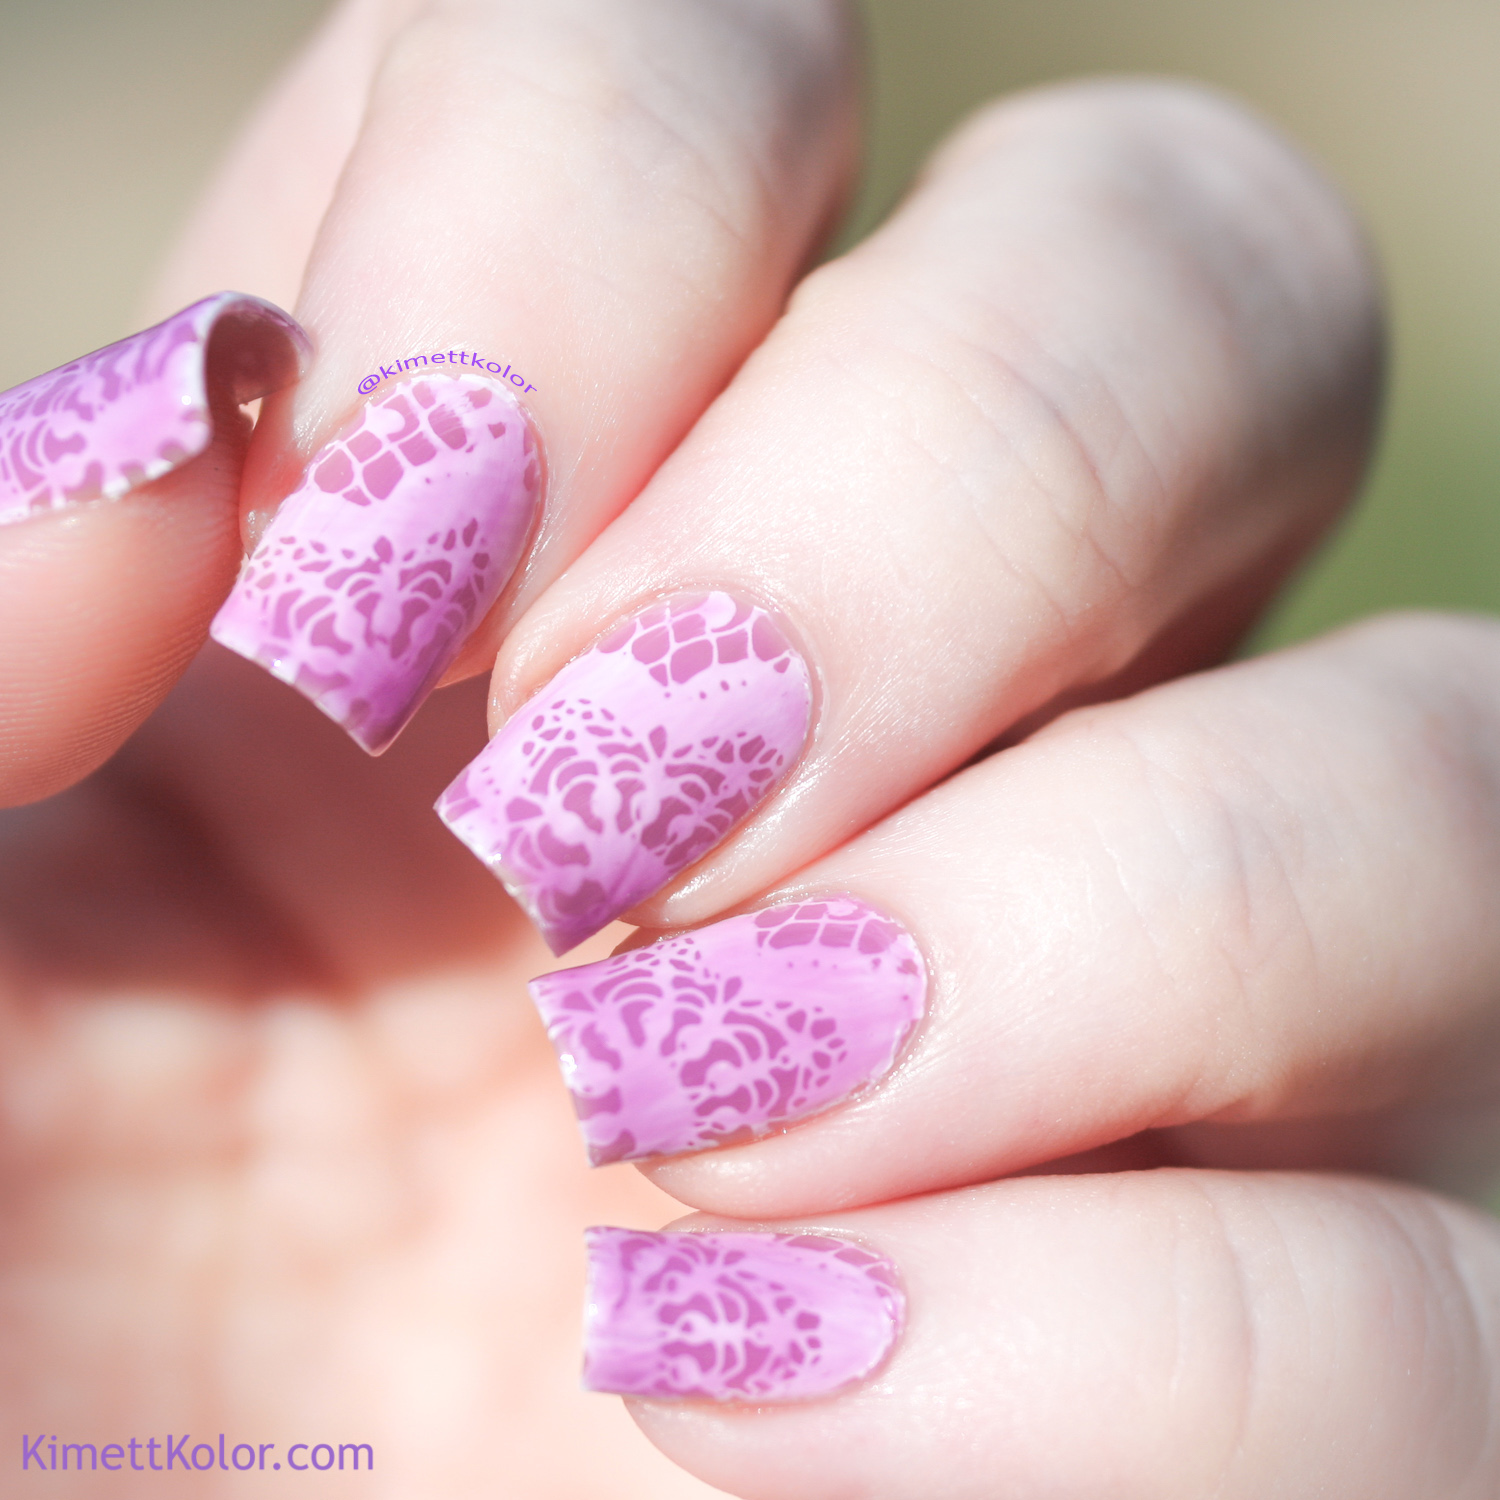 KimettKolor lilac lace stamping nail art